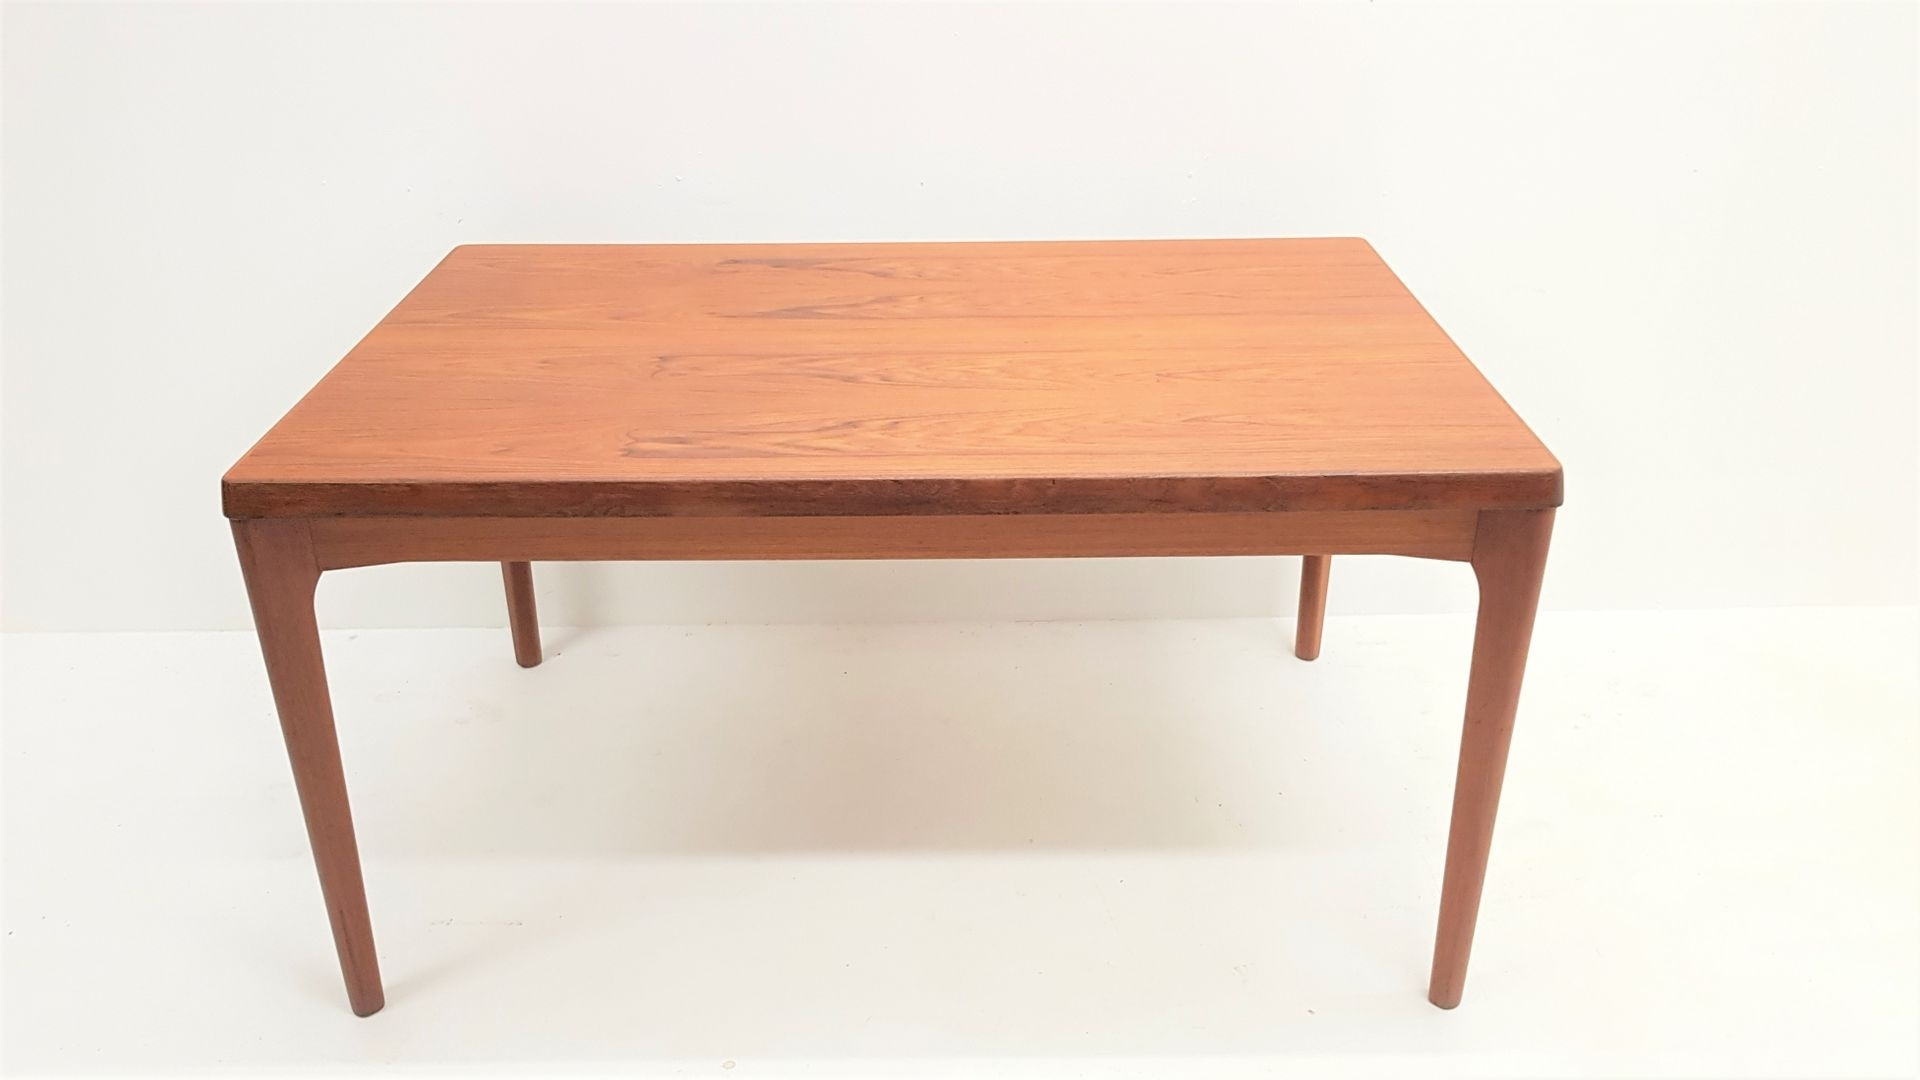 Recent Teak Extendable Dining Tablehenning Kjærnulf For Vejle Within Square Extendable Dining Tables (View 11 of 25)